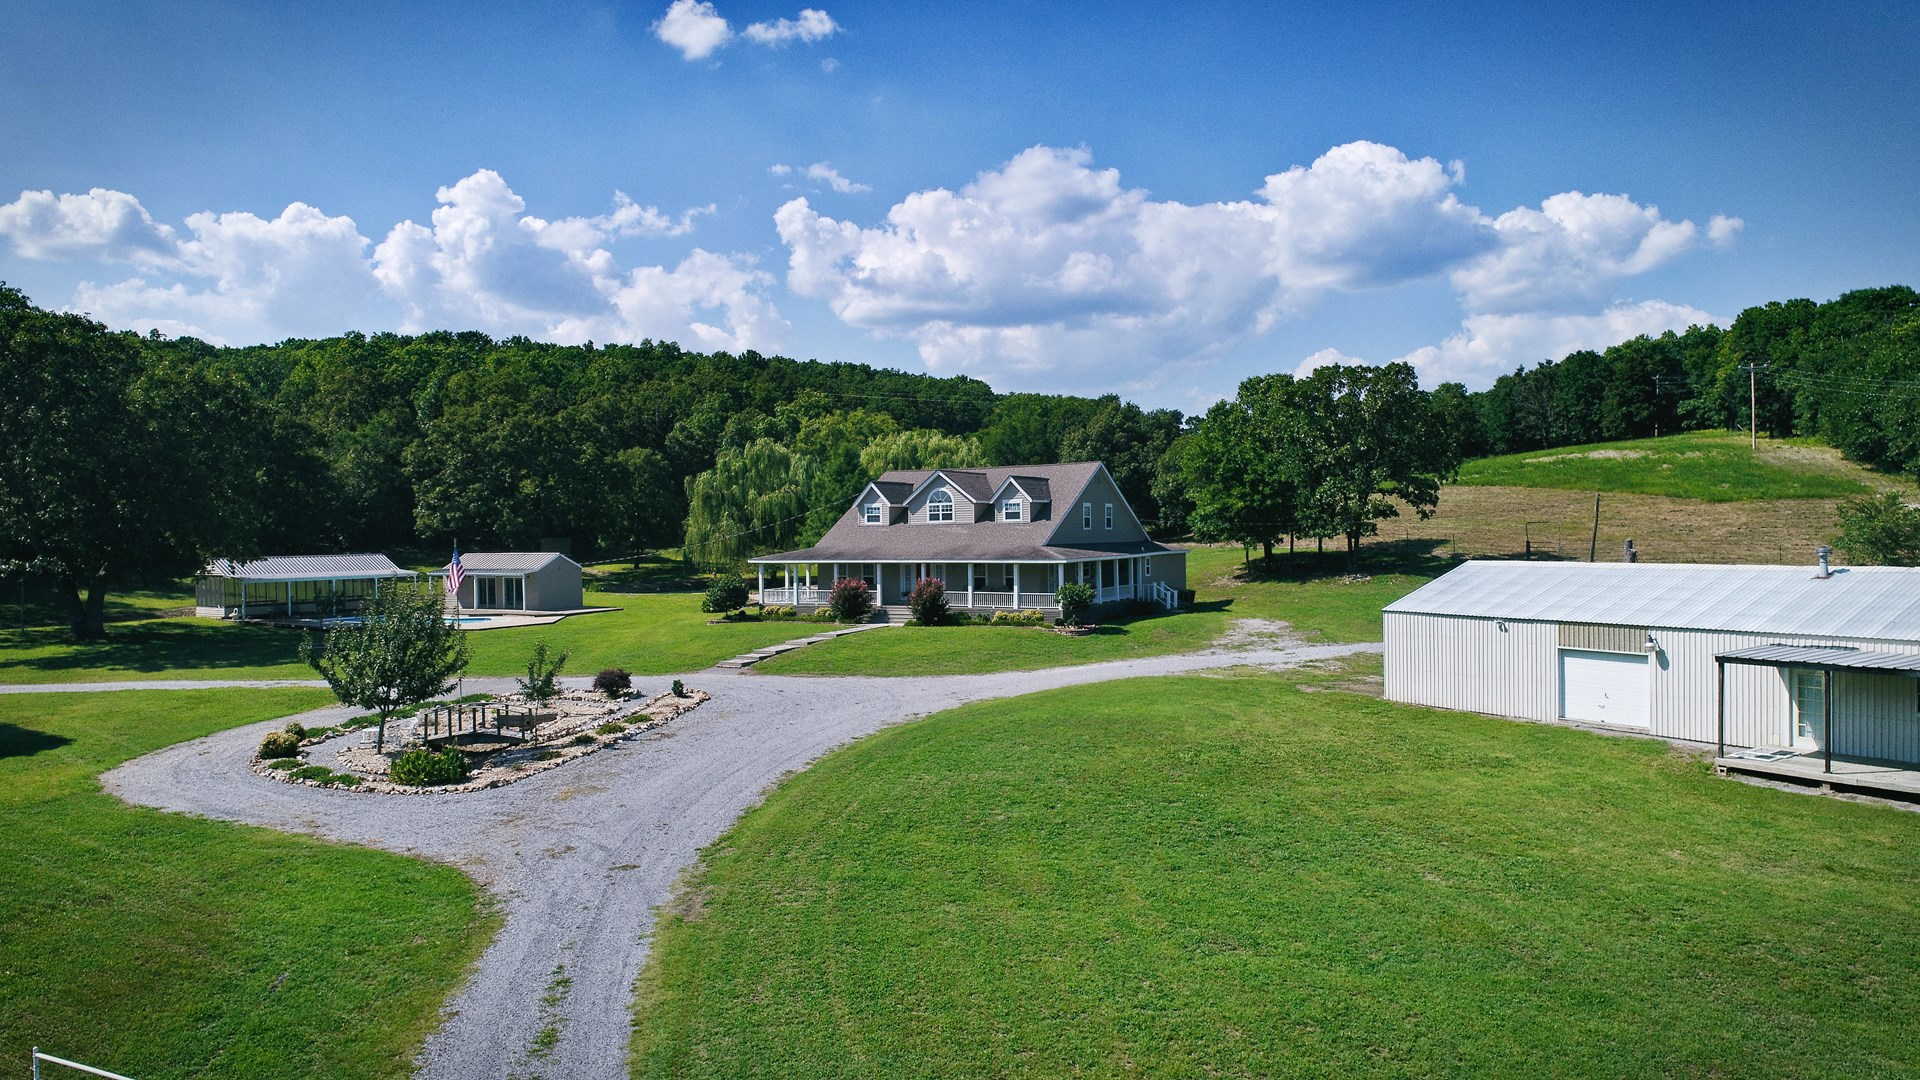 80 Acre Country Home